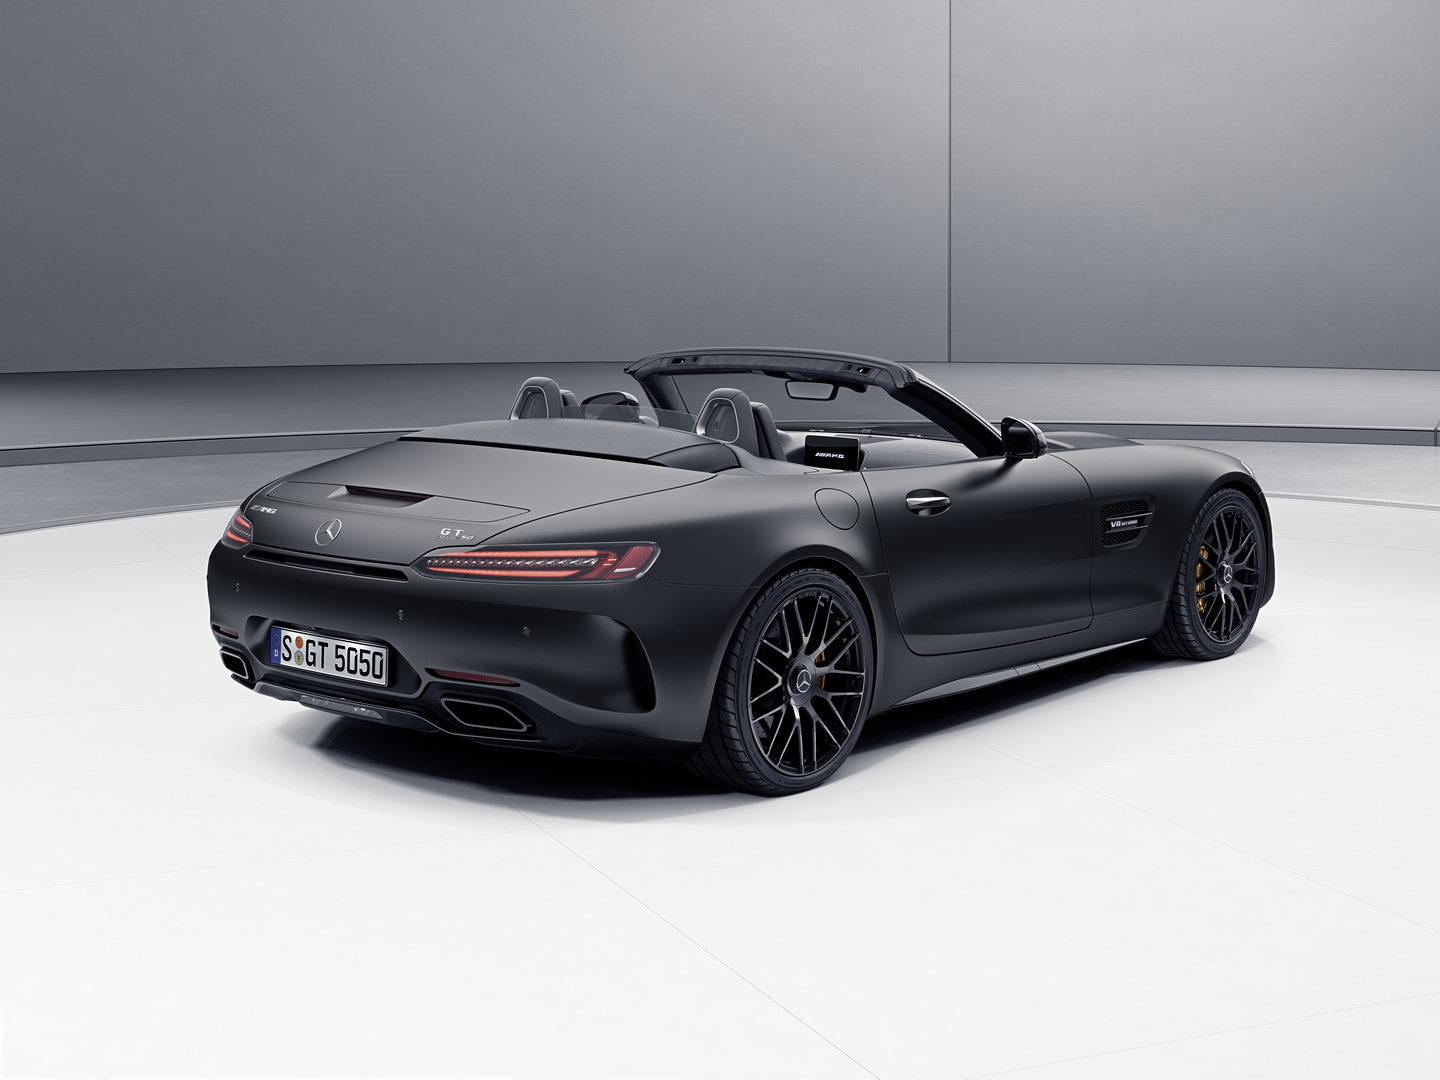 Mercedes AMG GT C Roadster Edition 50 1